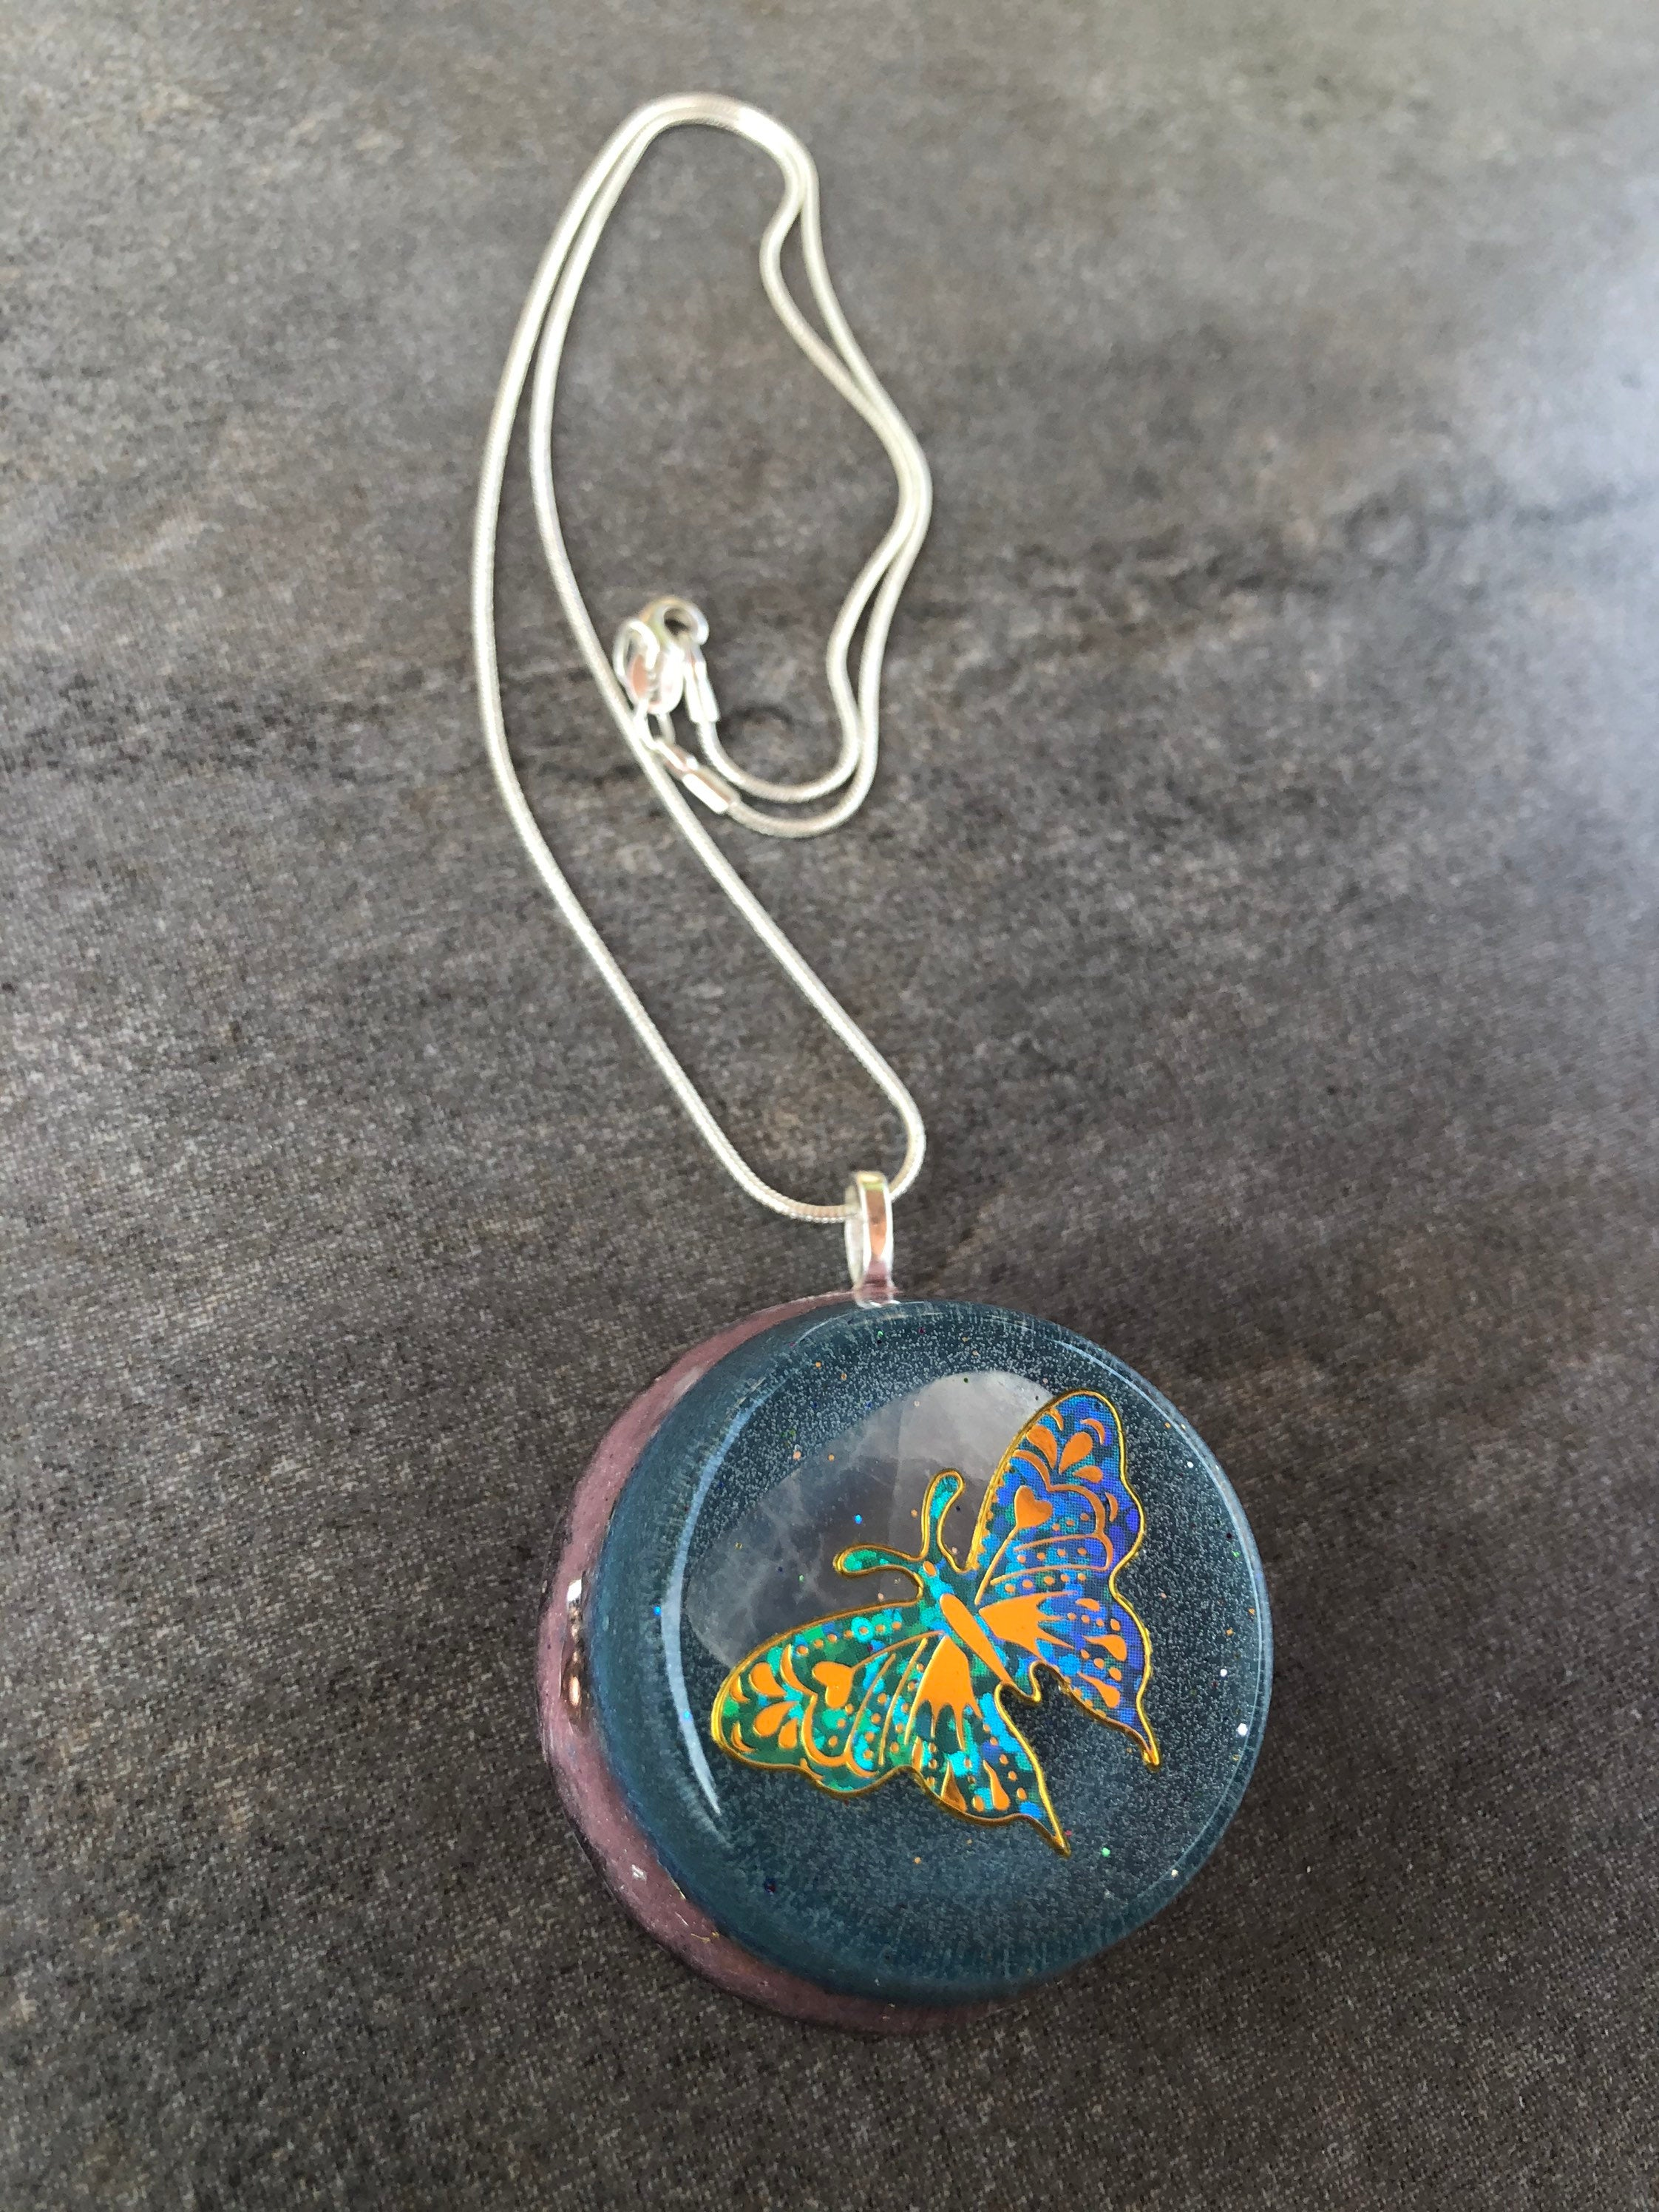 Ascension Orgonite Pendant: Orgone Energy Amulet for Transformation